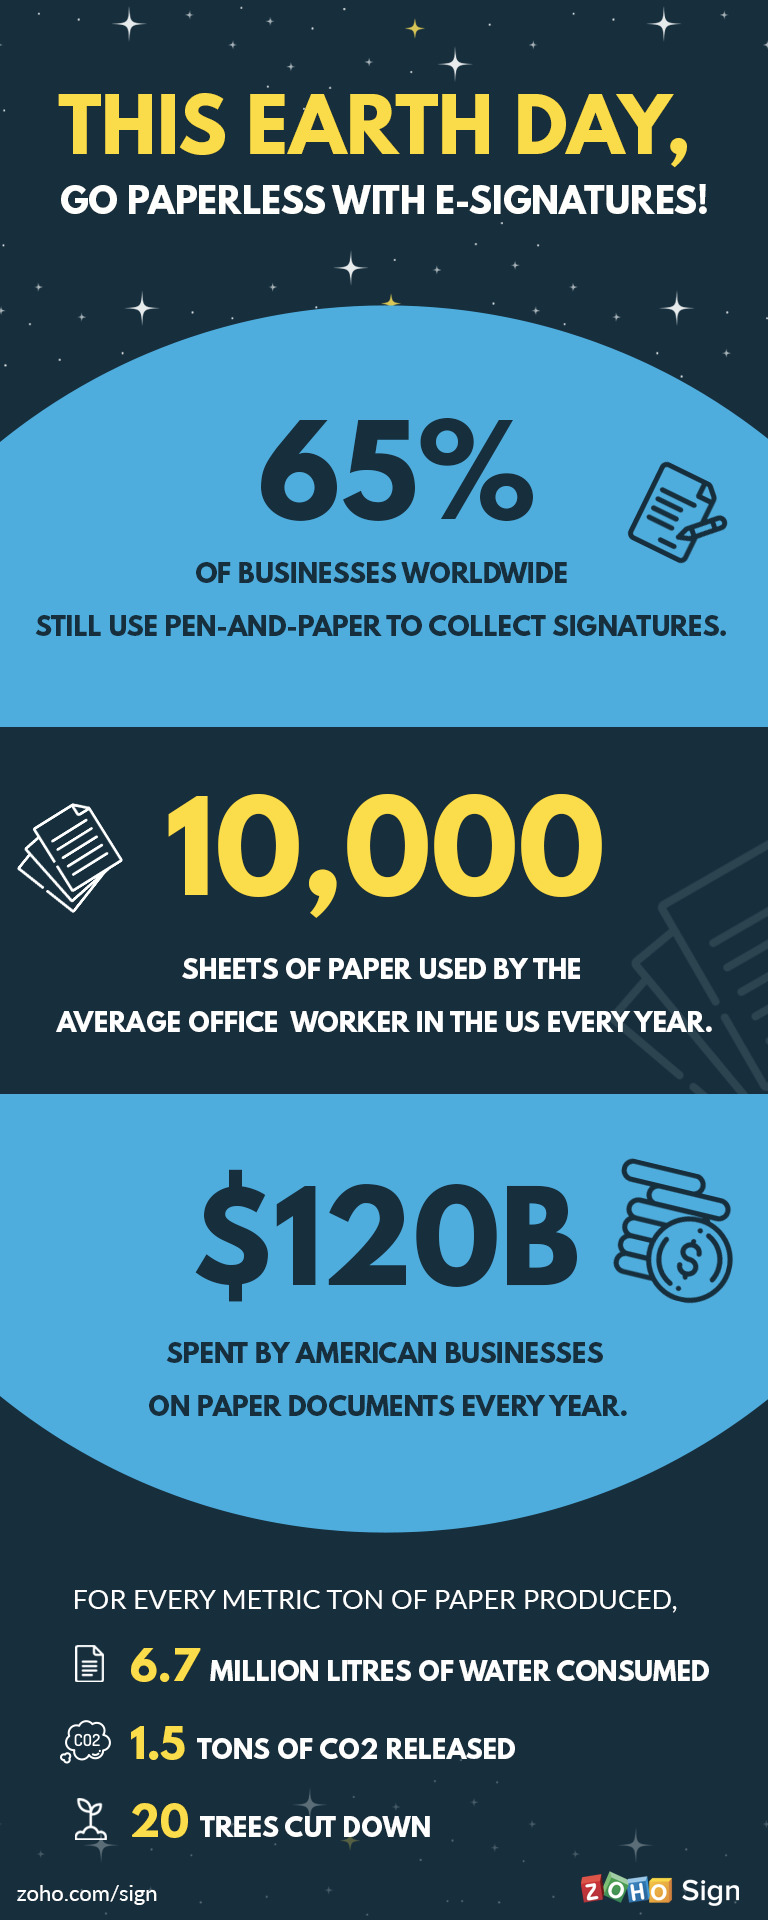 This Earth Day, go paperless with e-signatures!